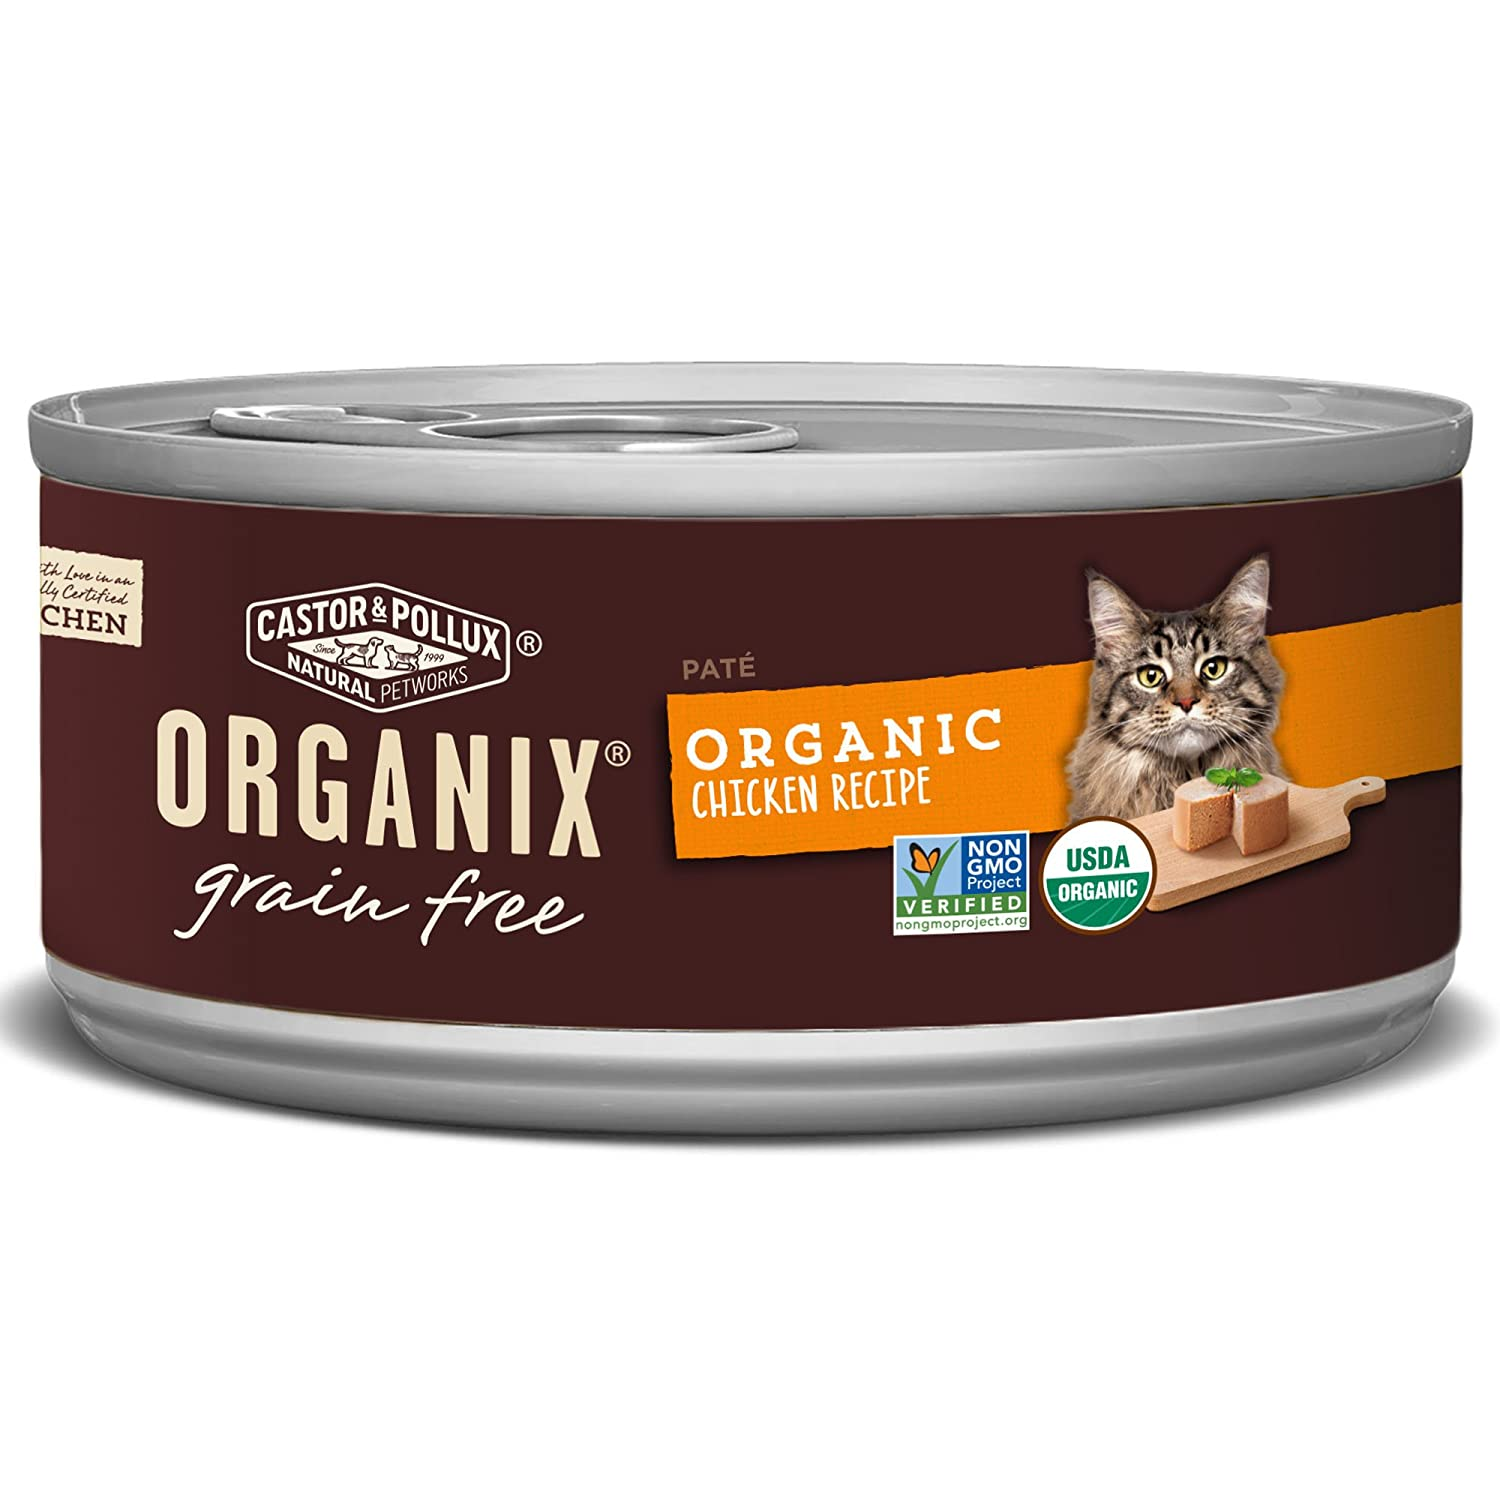 Organix Organic Canned Cat Food Chicken Pate